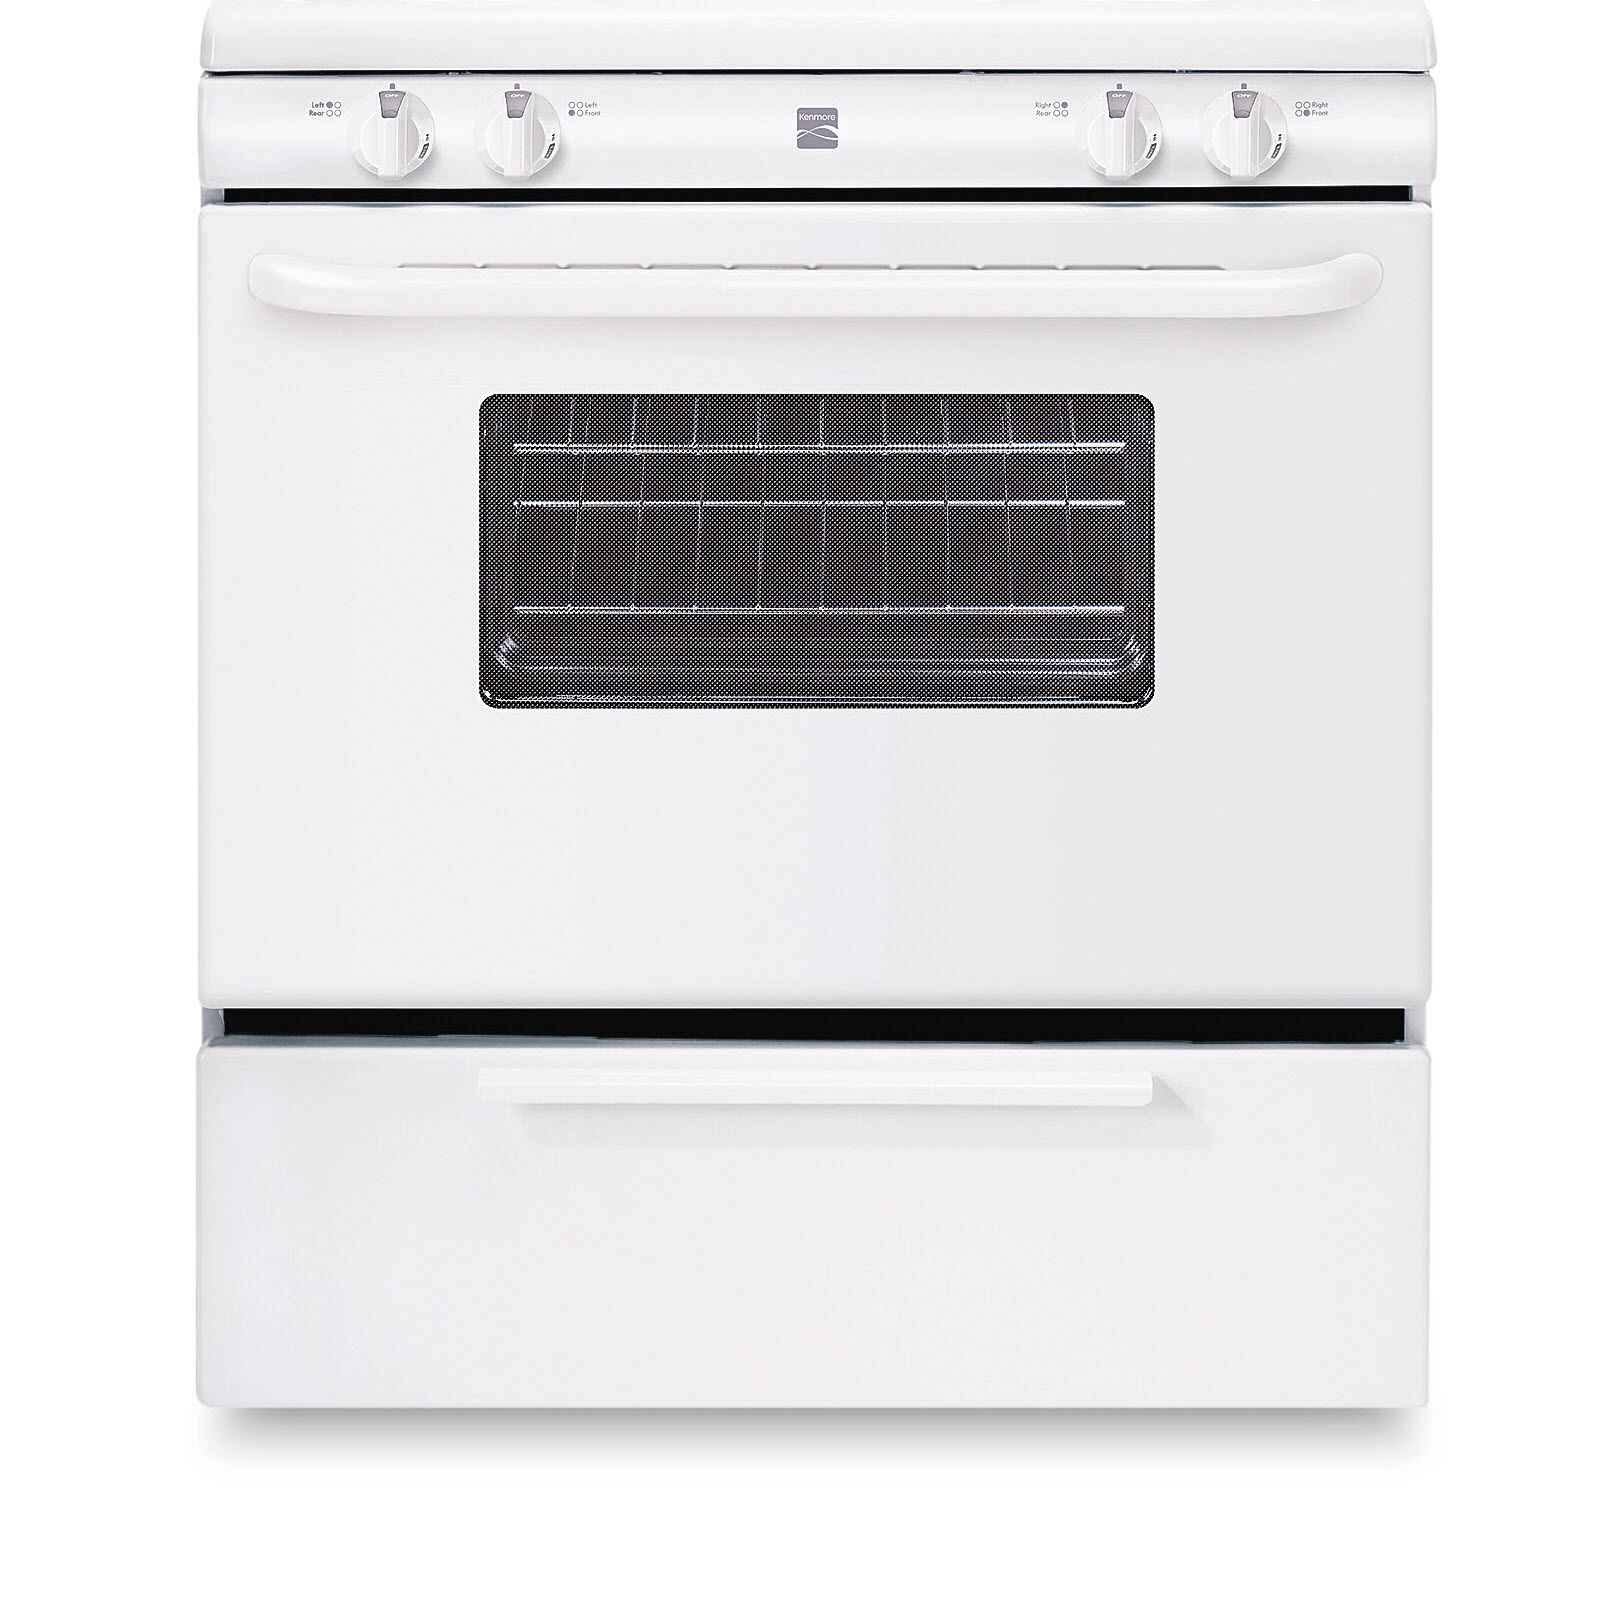 Kenmore 4.2 cu. ft. Freestanding Gas Range